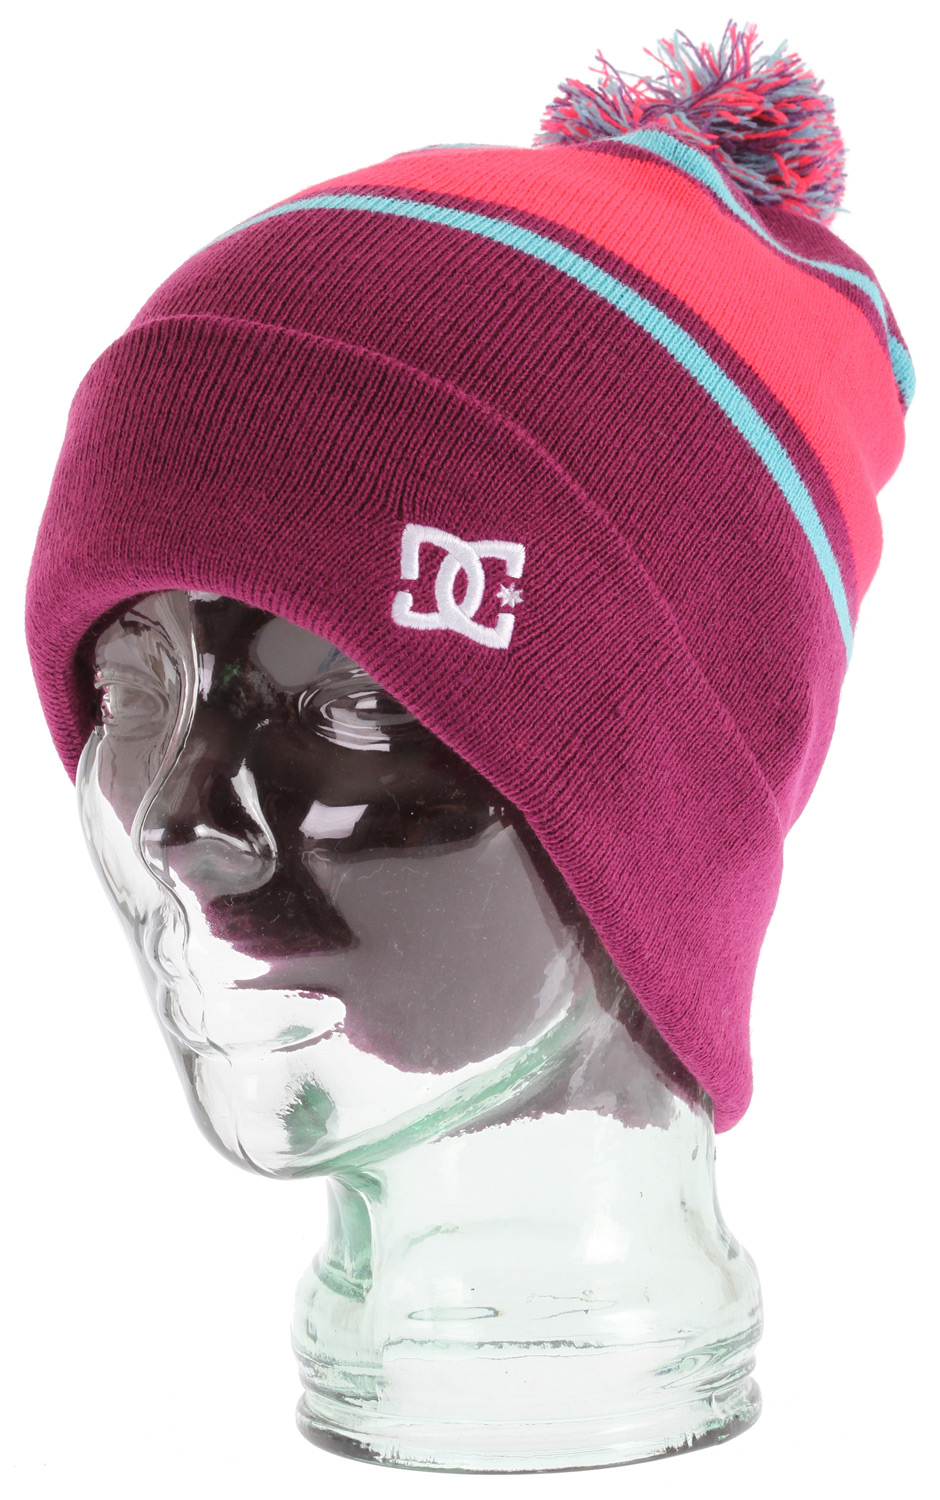 Pom topped cuffed standard beanie with jacquarded stripes. 100% acrylic - $19.95